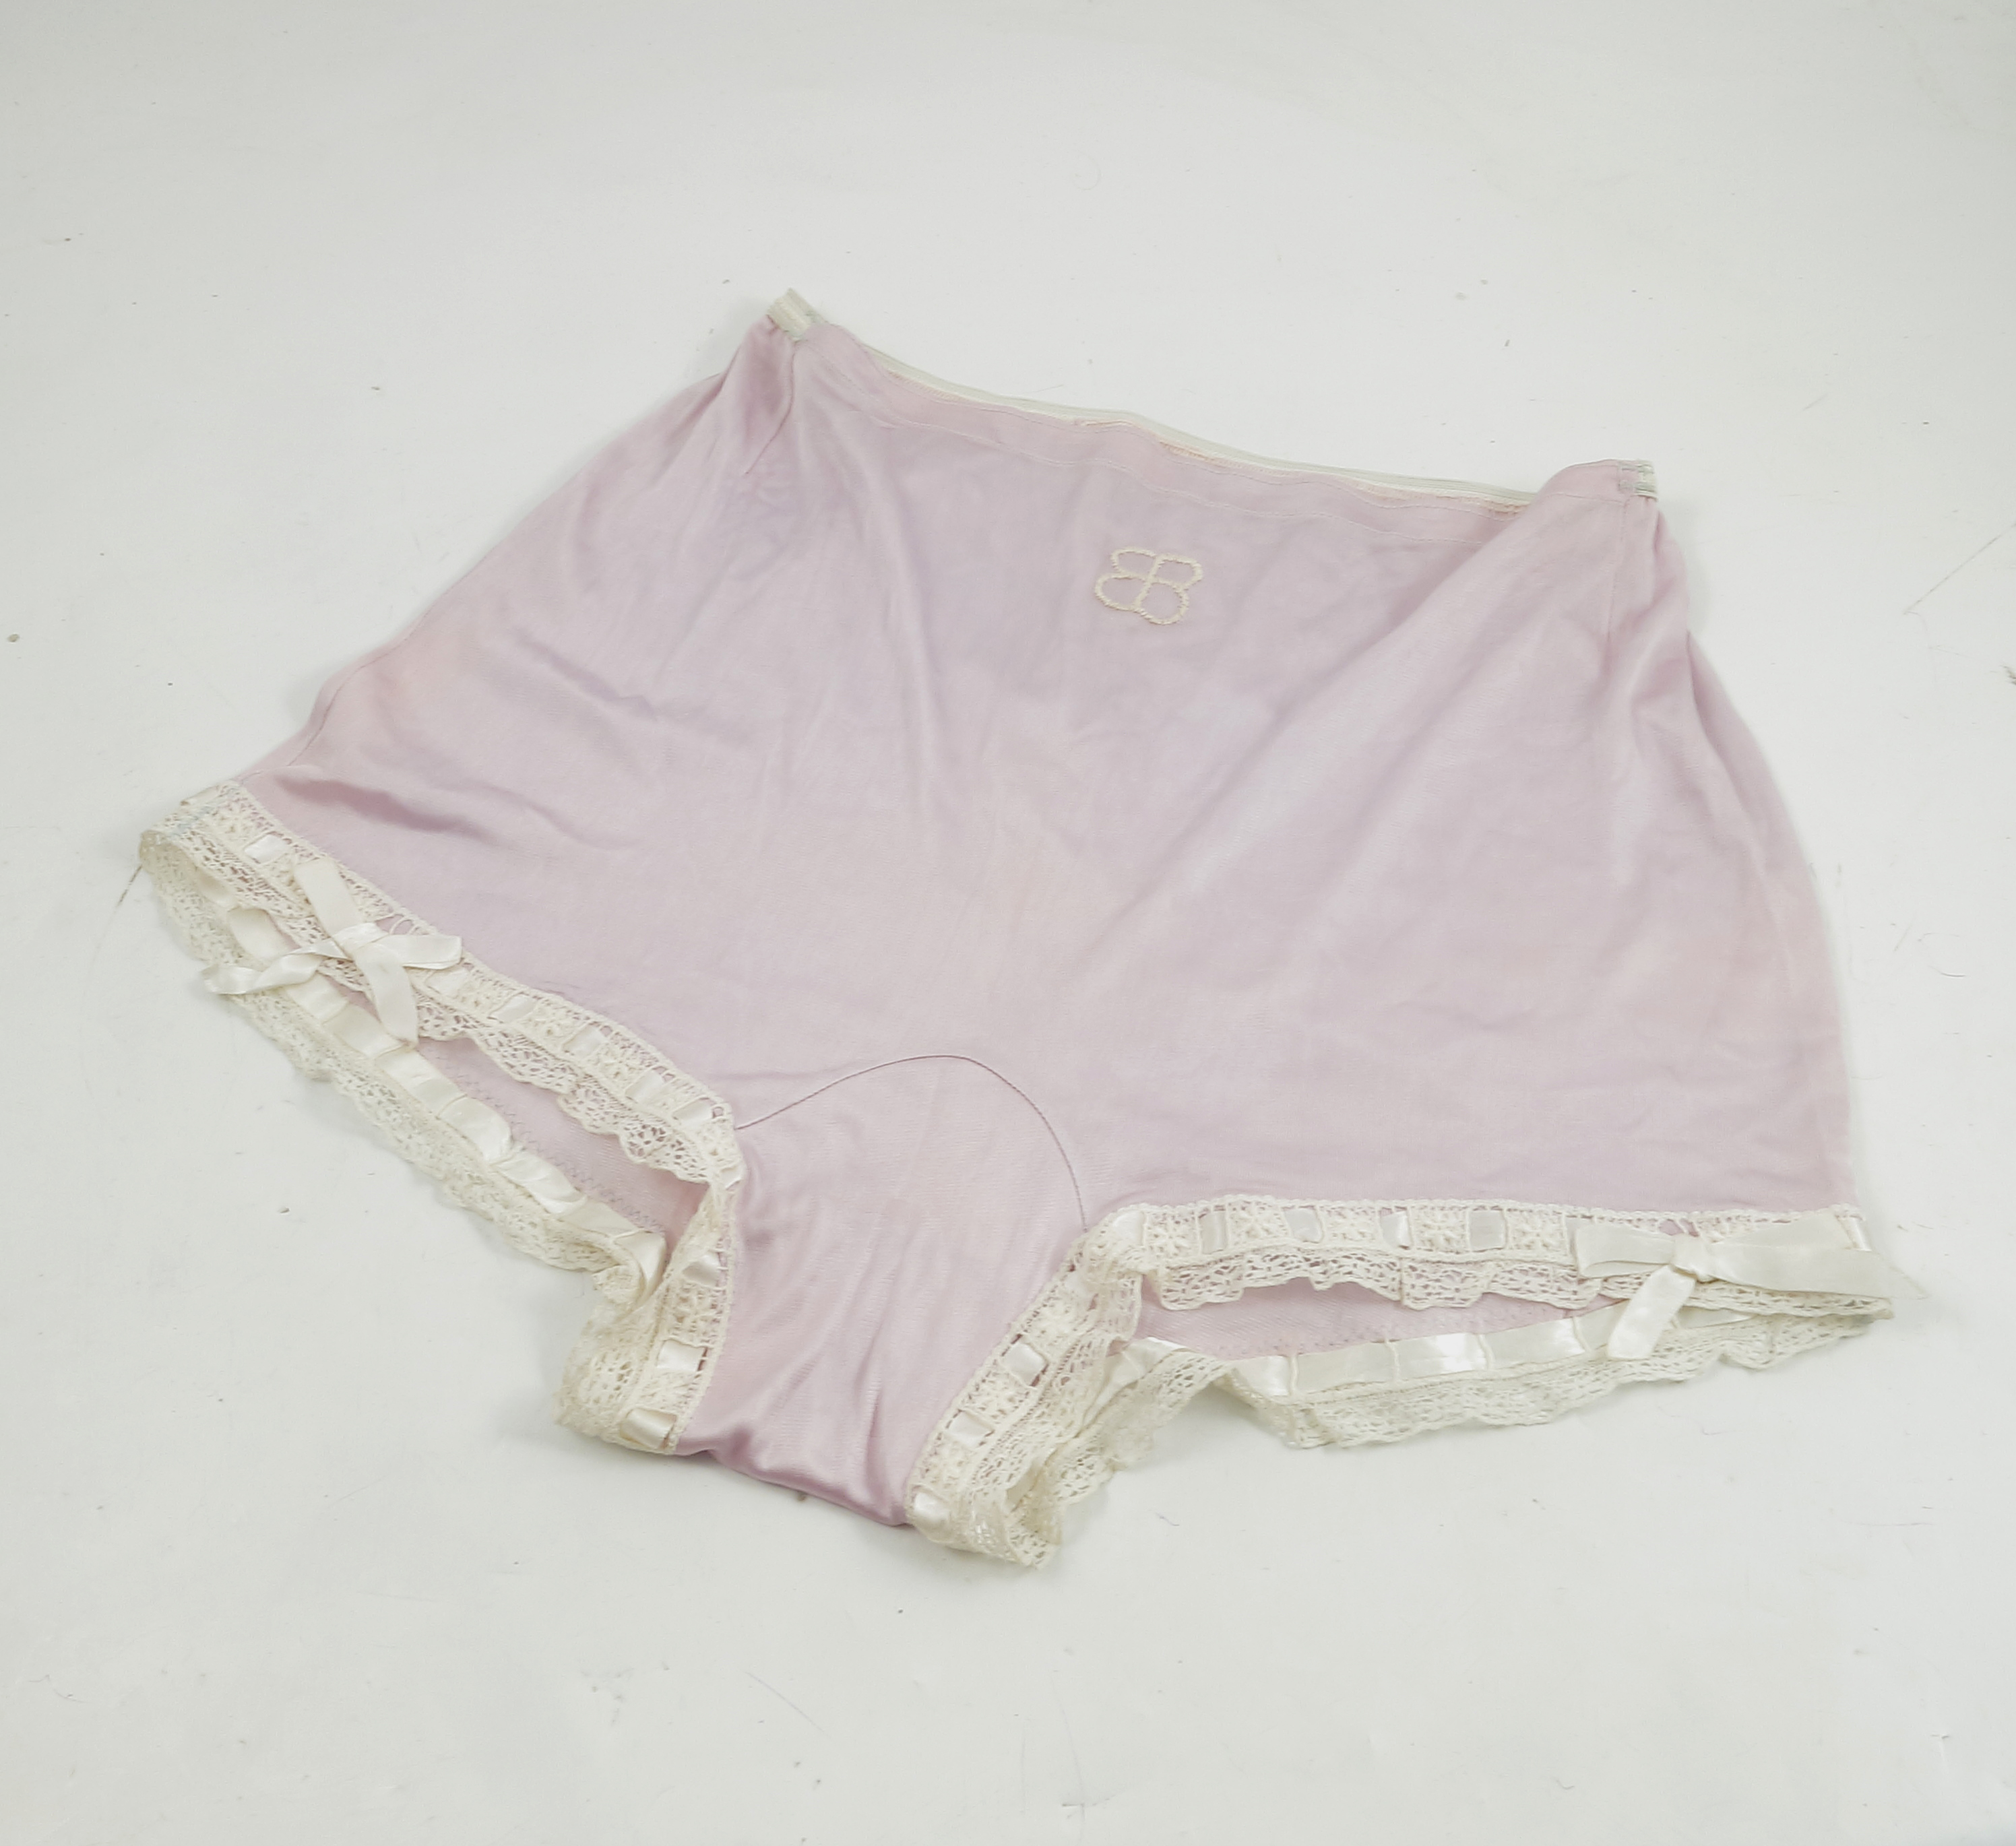 Eva Braun, a pair of under garments, with lace and ribbon trim, embroidered with her initials, - Image 2 of 4